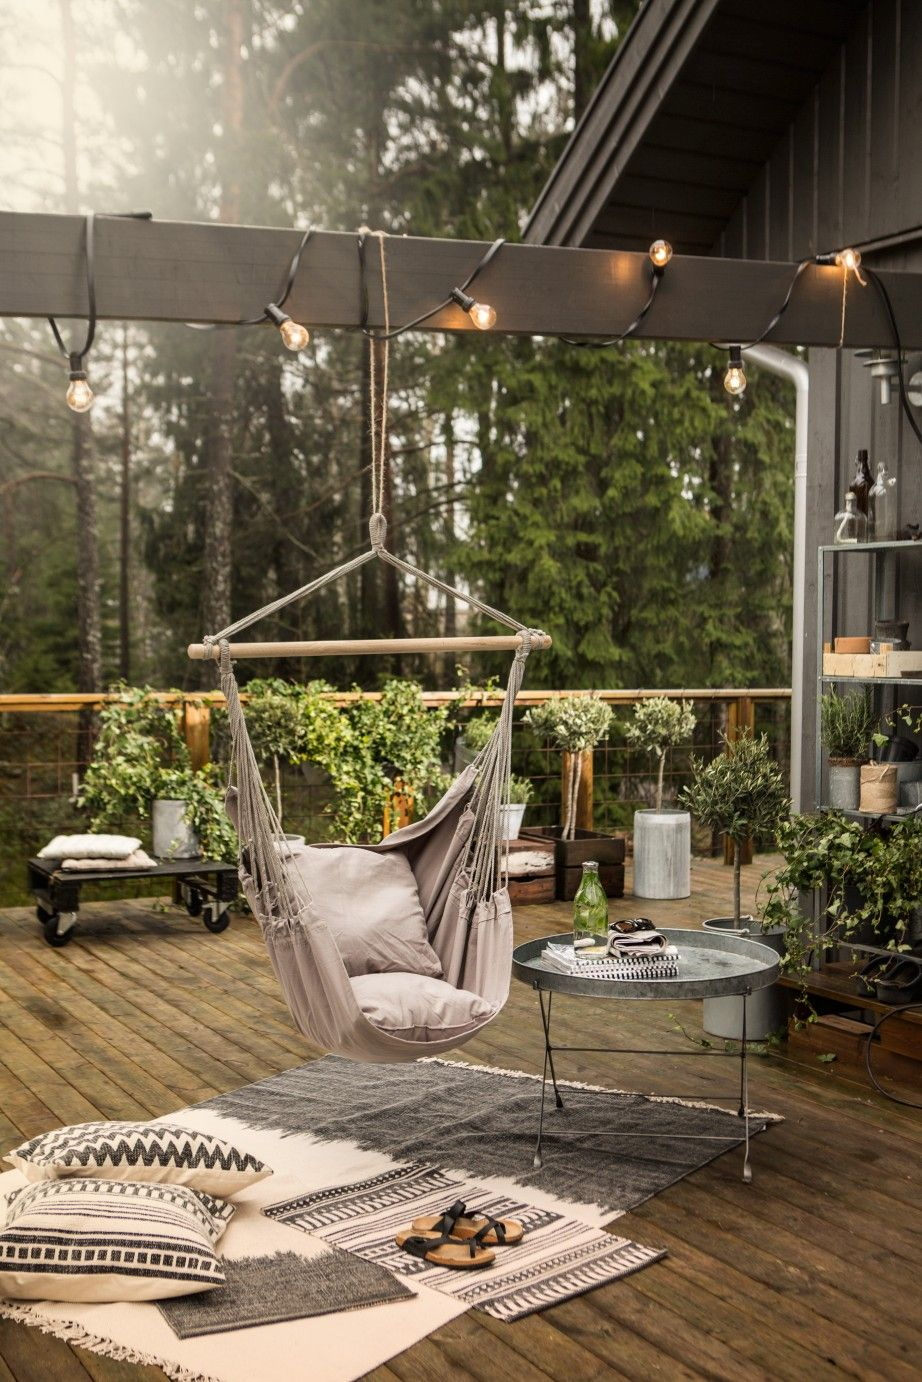 Hang in there outdoor space pinterest hammock chair oasis